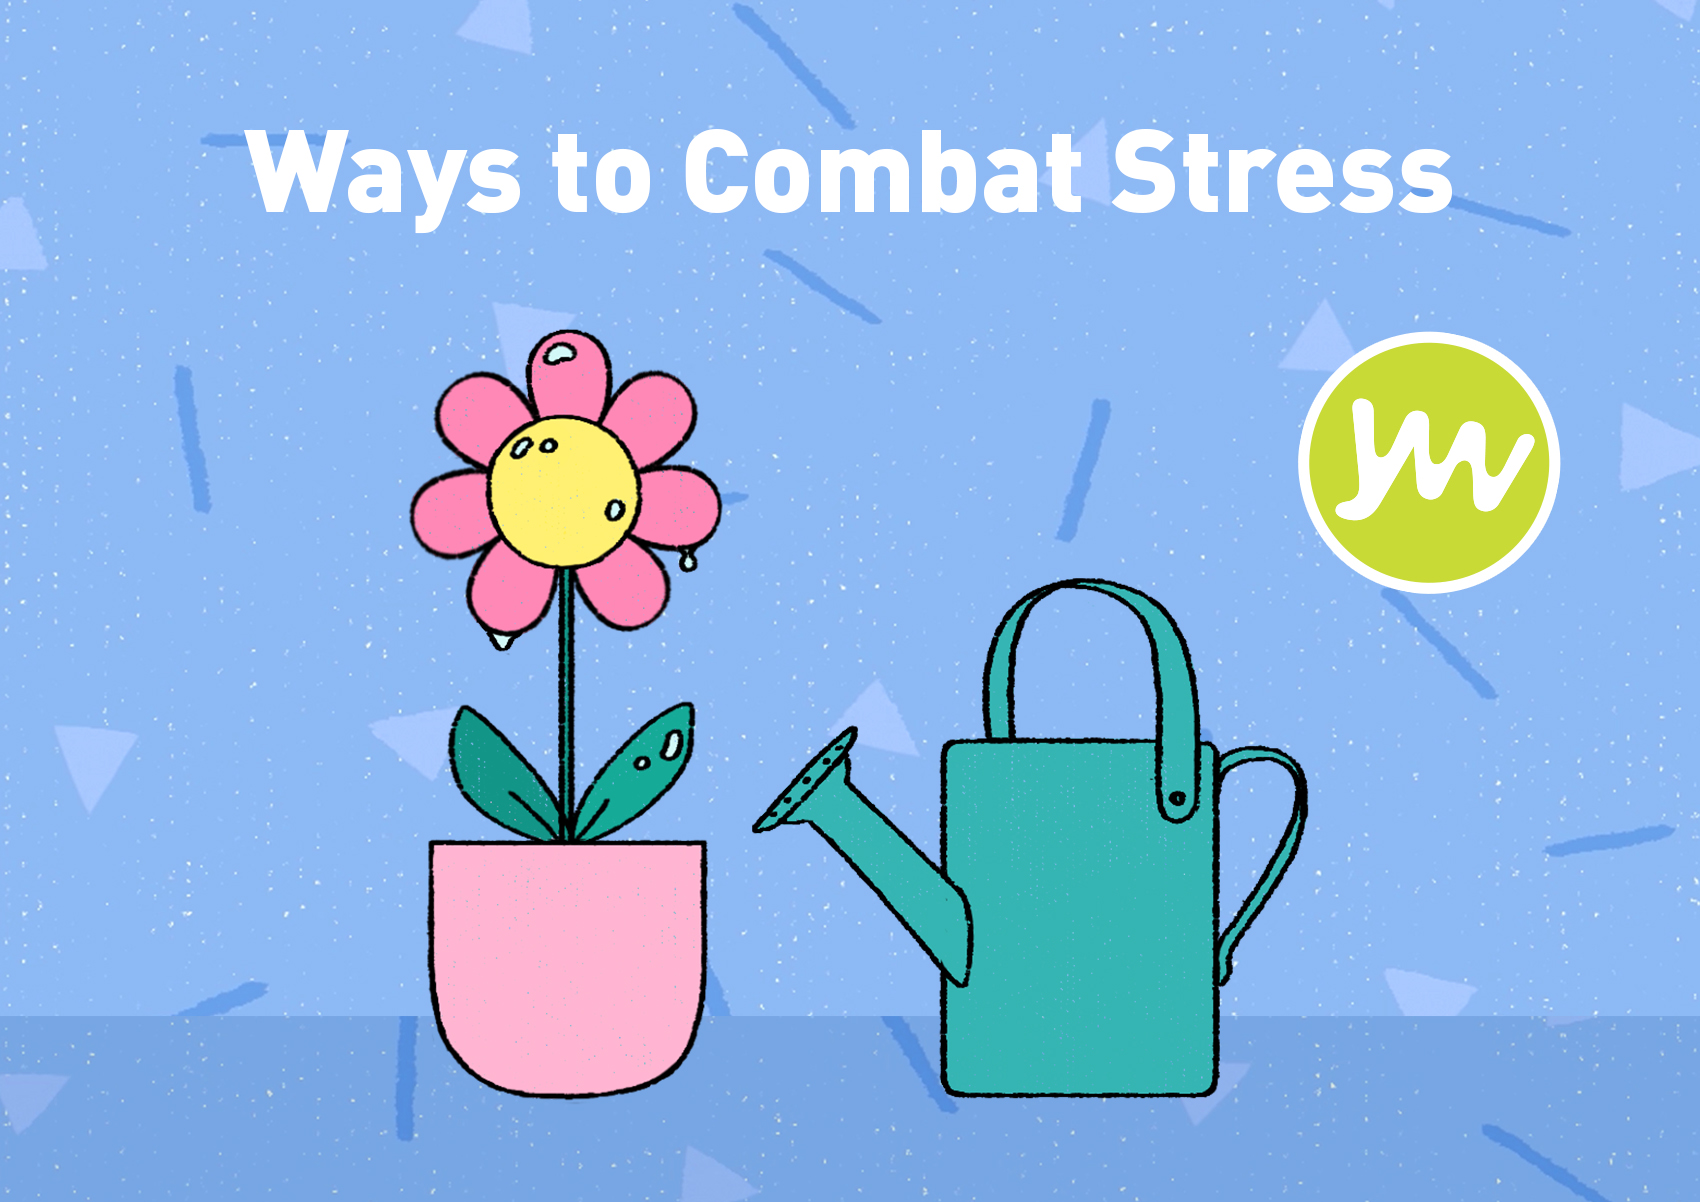 Ways to combat stress